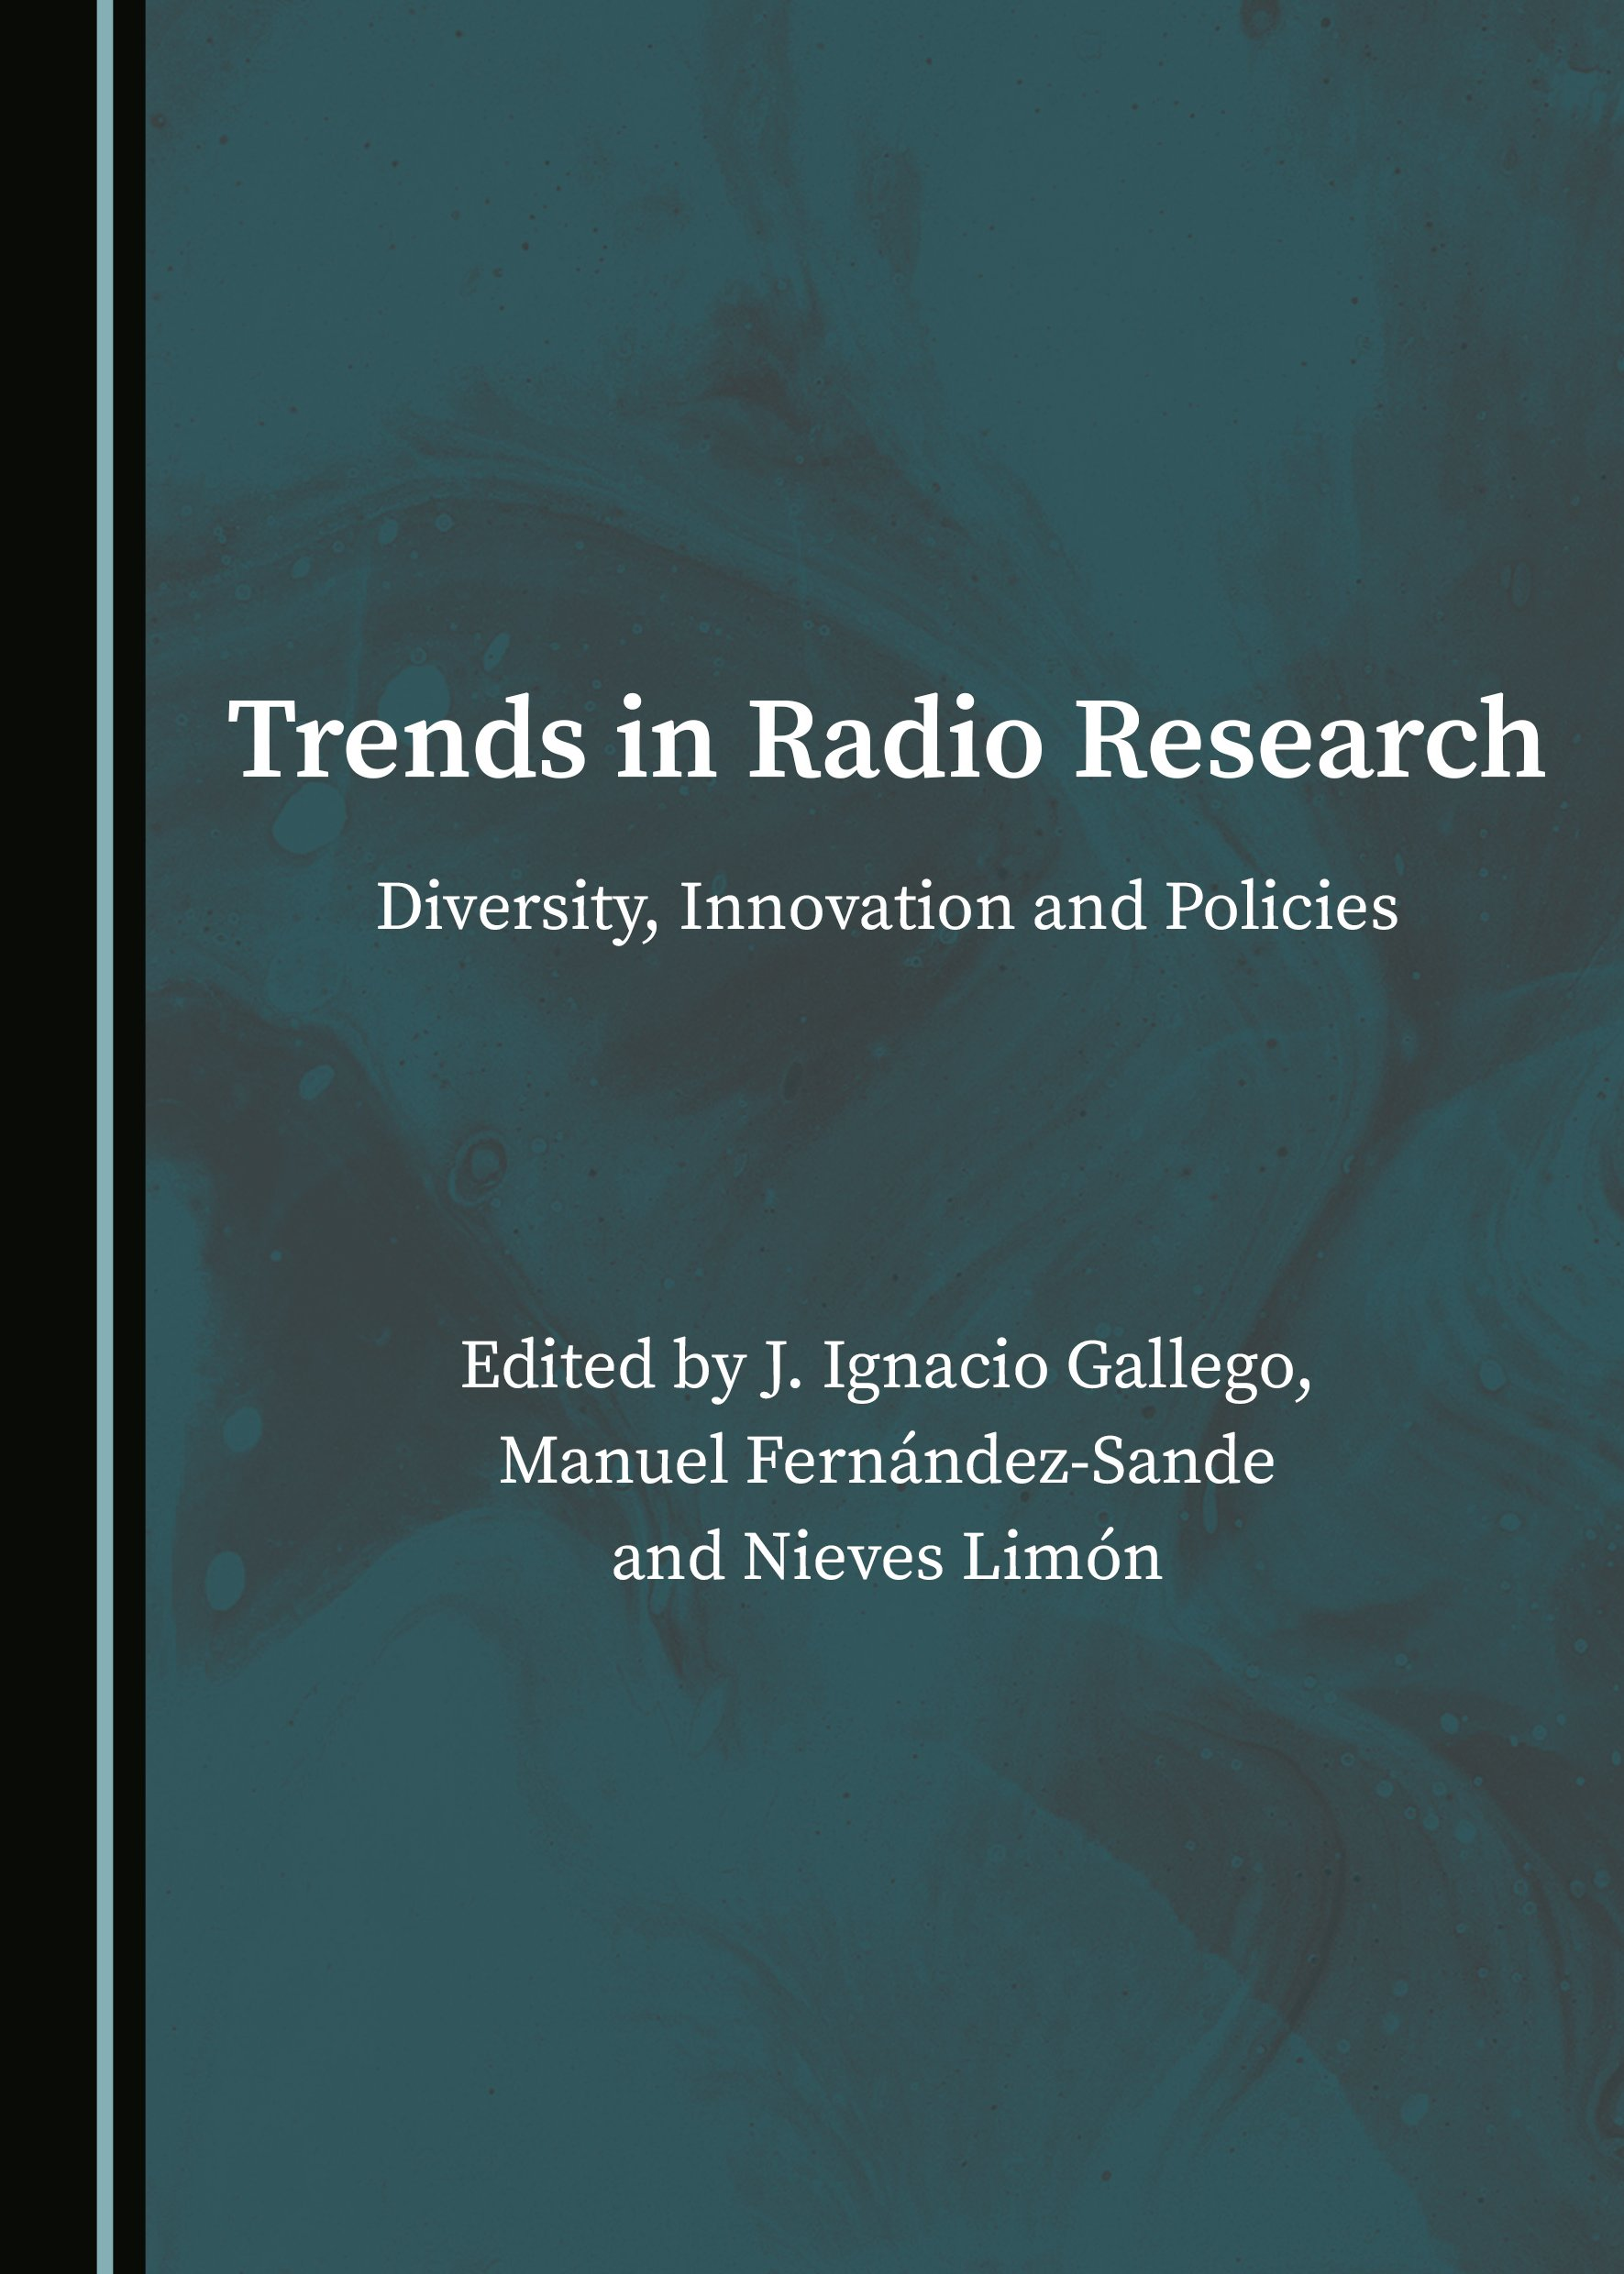 Trends in Radio Research: Diversity, Innovation and Policies